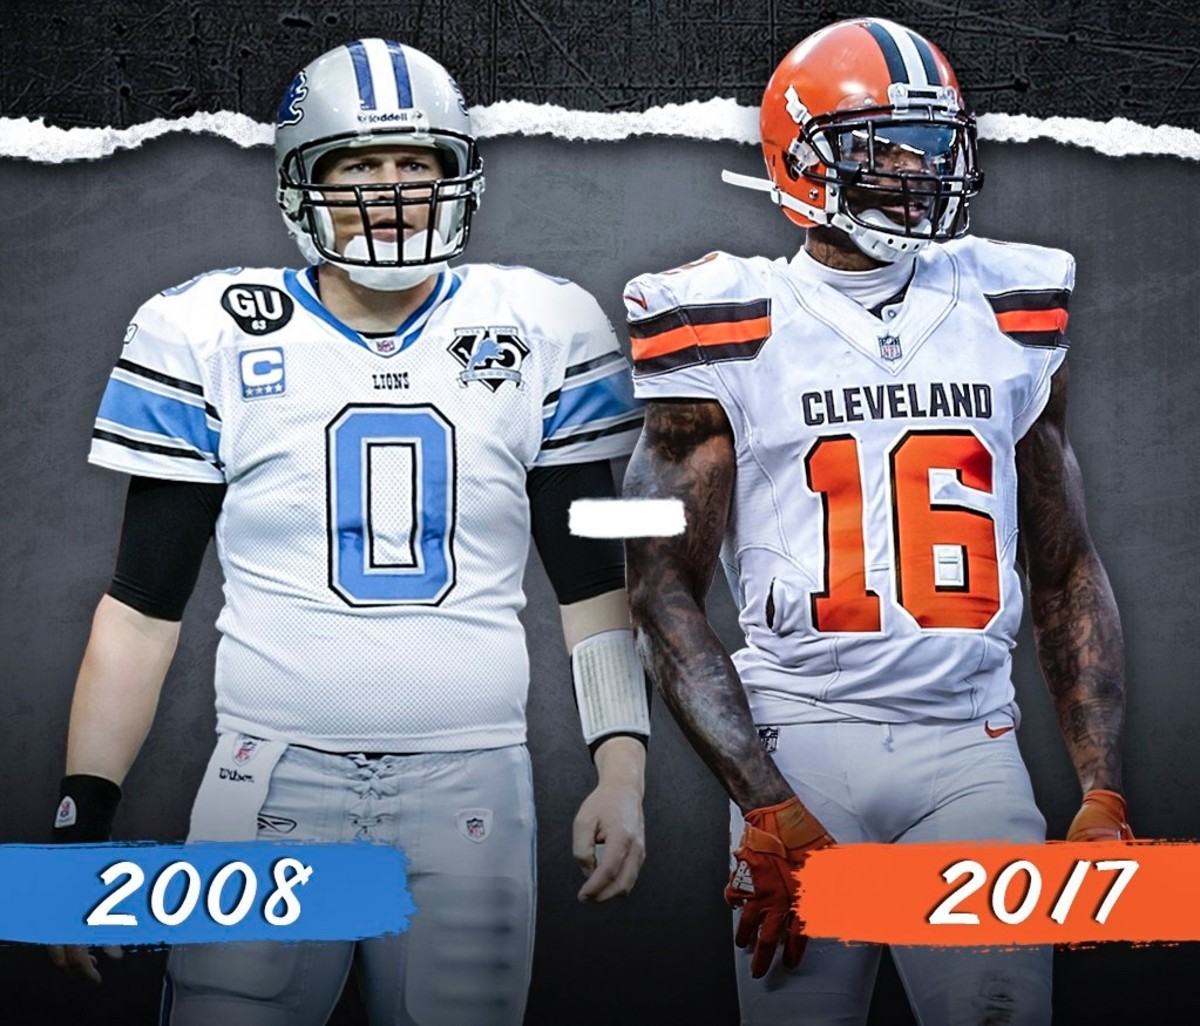 Who Was Worse? - 2017 Cleveland Browns vs 2008 Detroit Lions